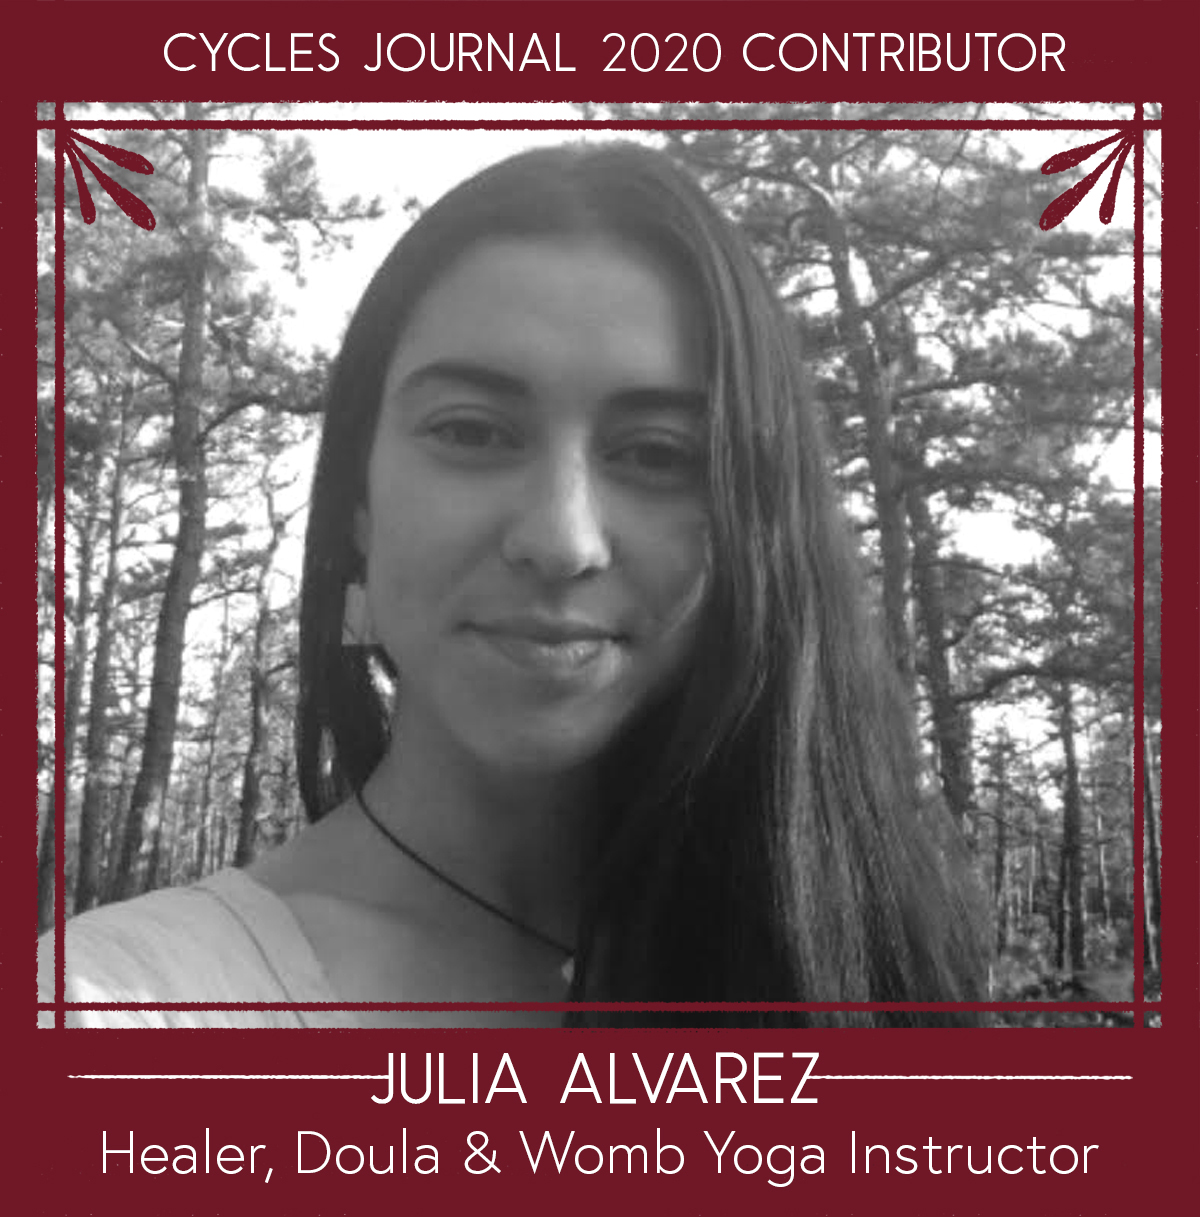 Julia Alvarez - Healer, Doula & Womb Yoga InstructorJulia teaches yoga, menstrual magic workshops and facilitates moon circles & retreats in Philly and beyond. Trained as a birth and postpartum doula and well-woman yoga therapist (Womb Yoga) she believes this work is spiritual and is humbled to serve the feminine in all forms.Social: @magiajulesWebsite: www.julia-alvarez.comEmail: juliaalvarez712 (@) gmail.com